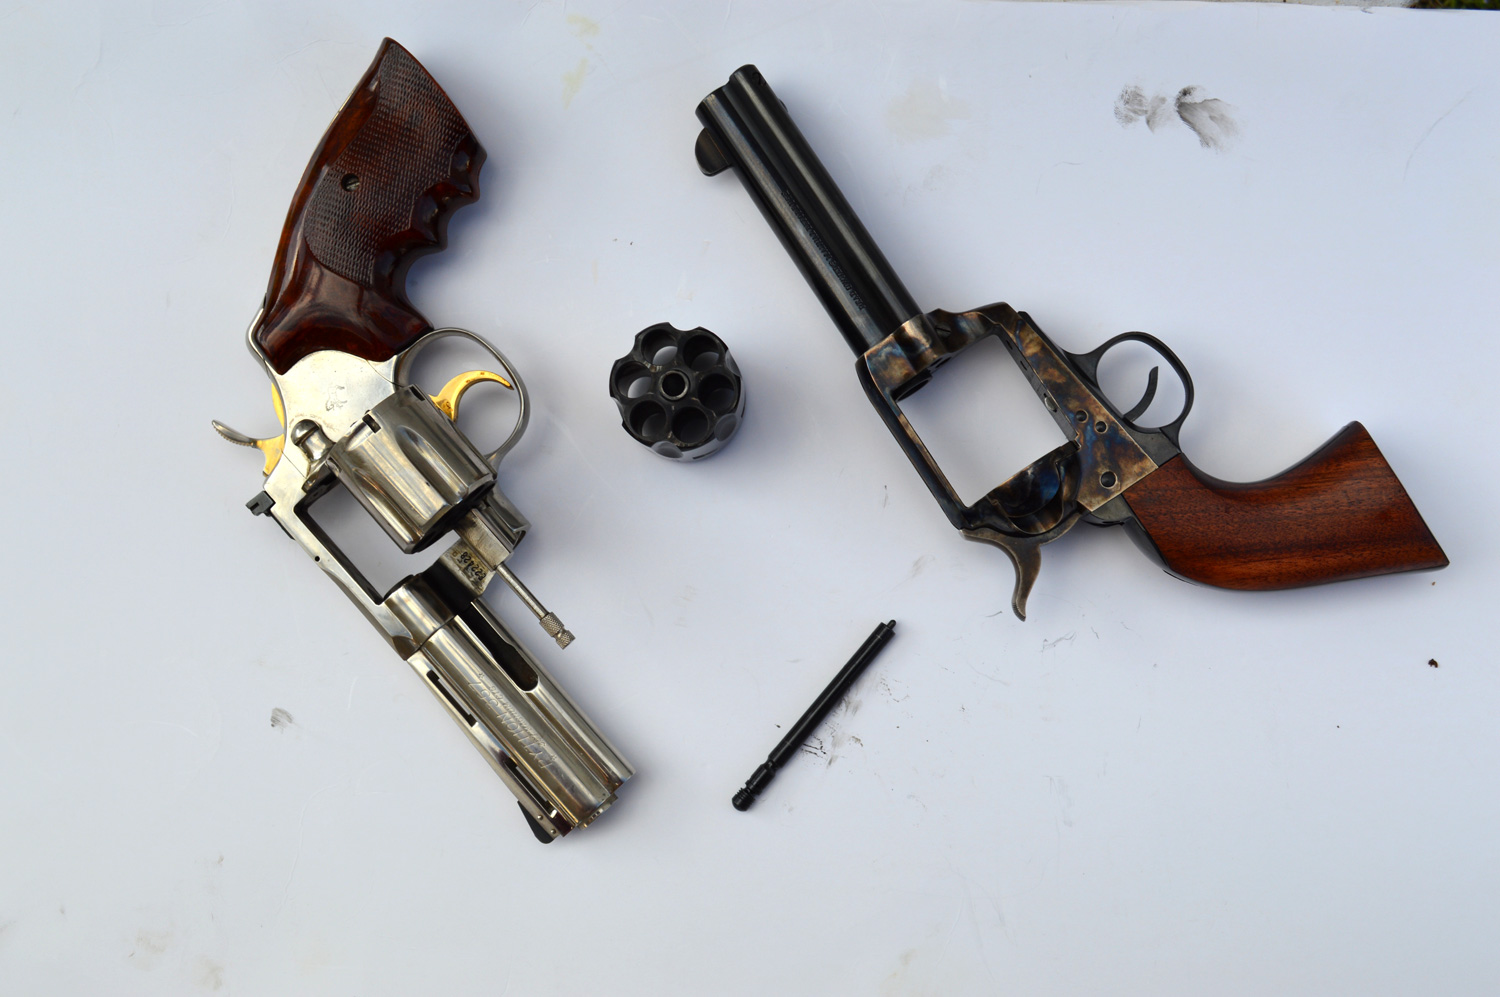 Two revolvers, one with the cylinder removed